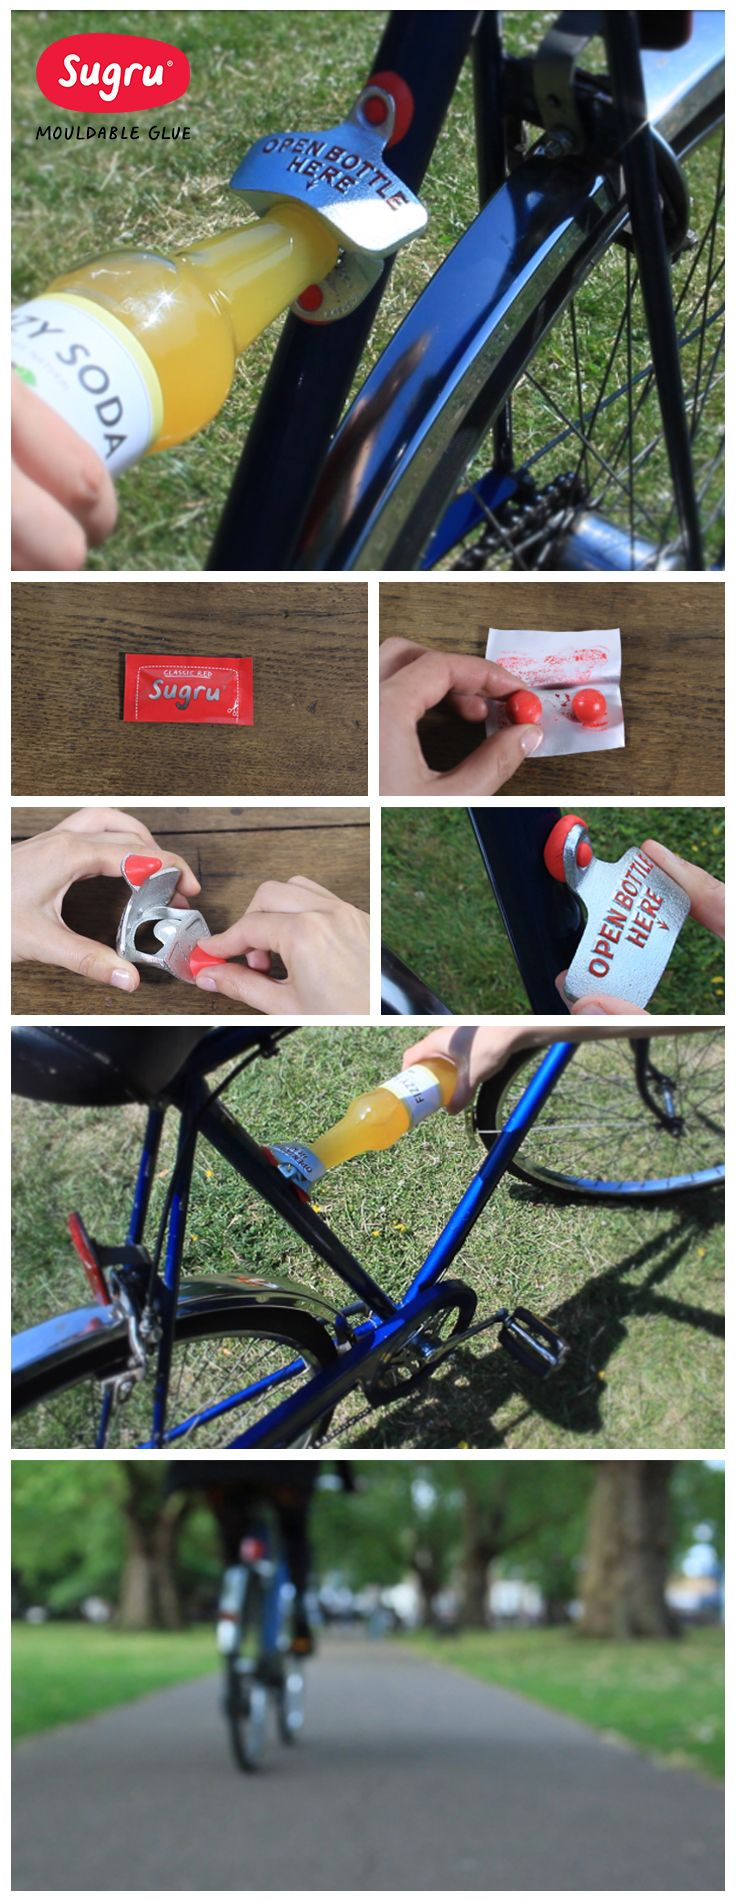 17 best images about sugru diy projects on pinterest an adventure running and bottle opener. Black Bedroom Furniture Sets. Home Design Ideas